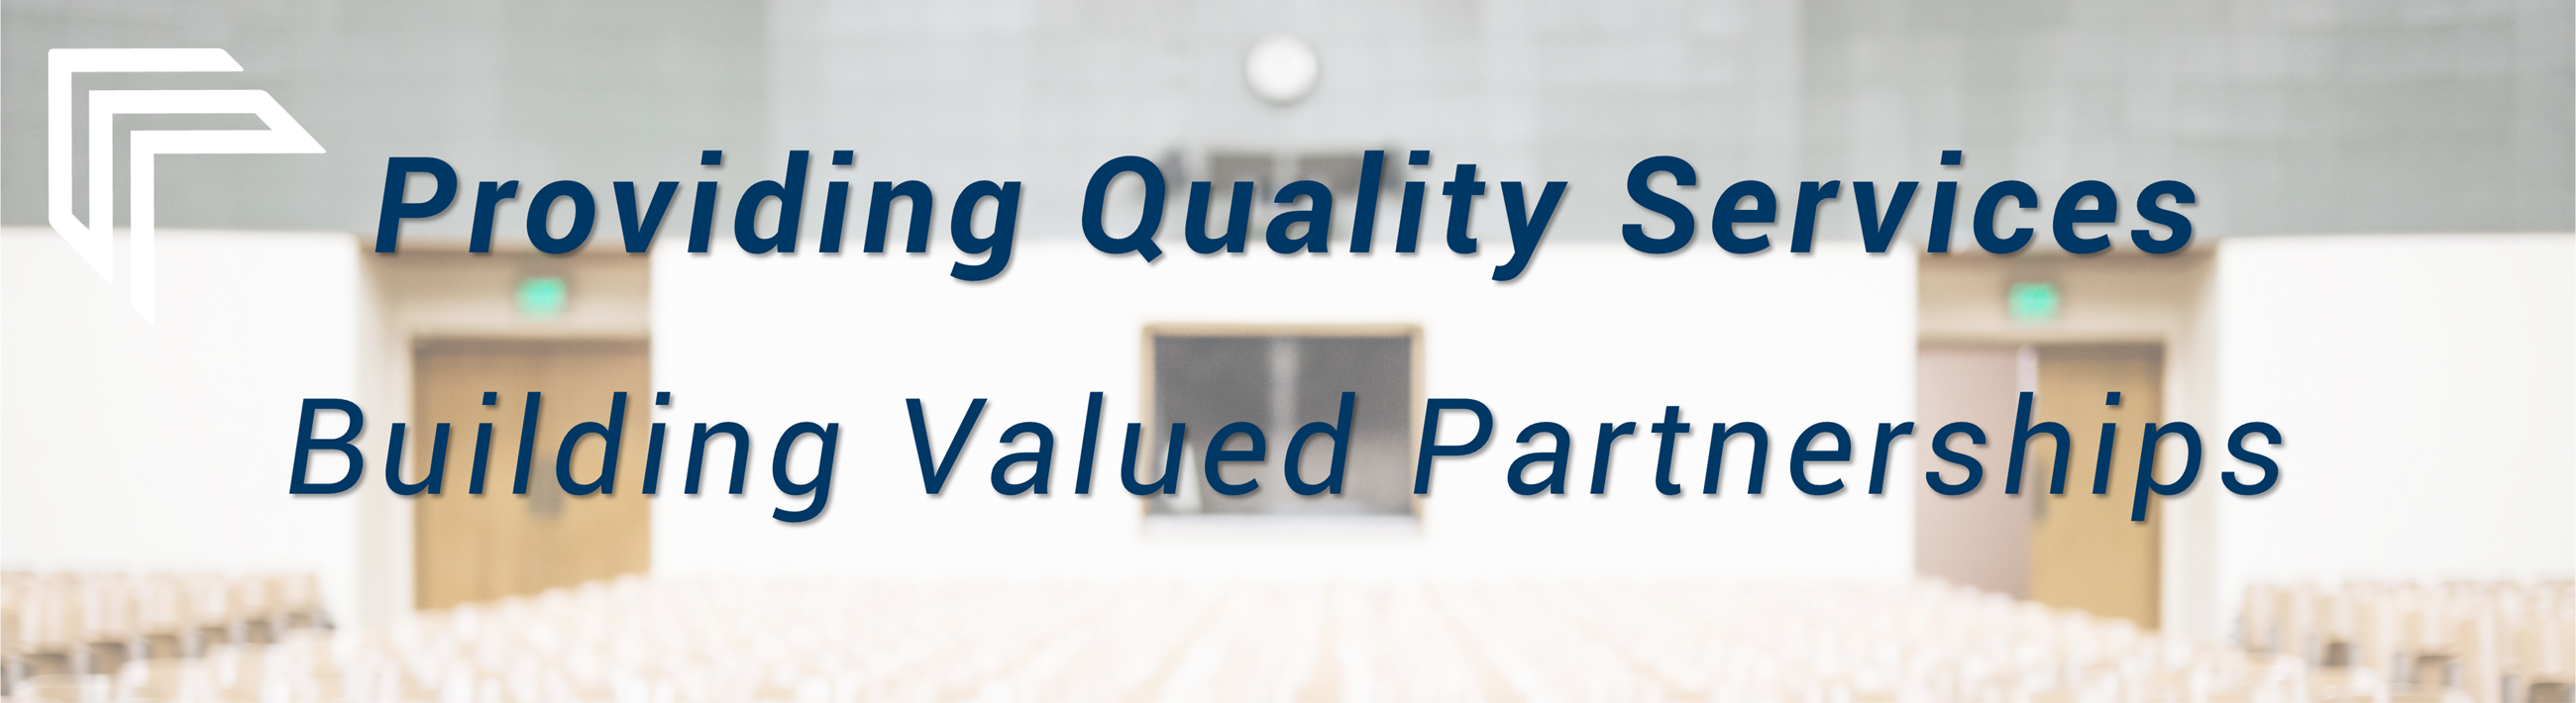 Providing Quality Services, Building Valued Partnerships